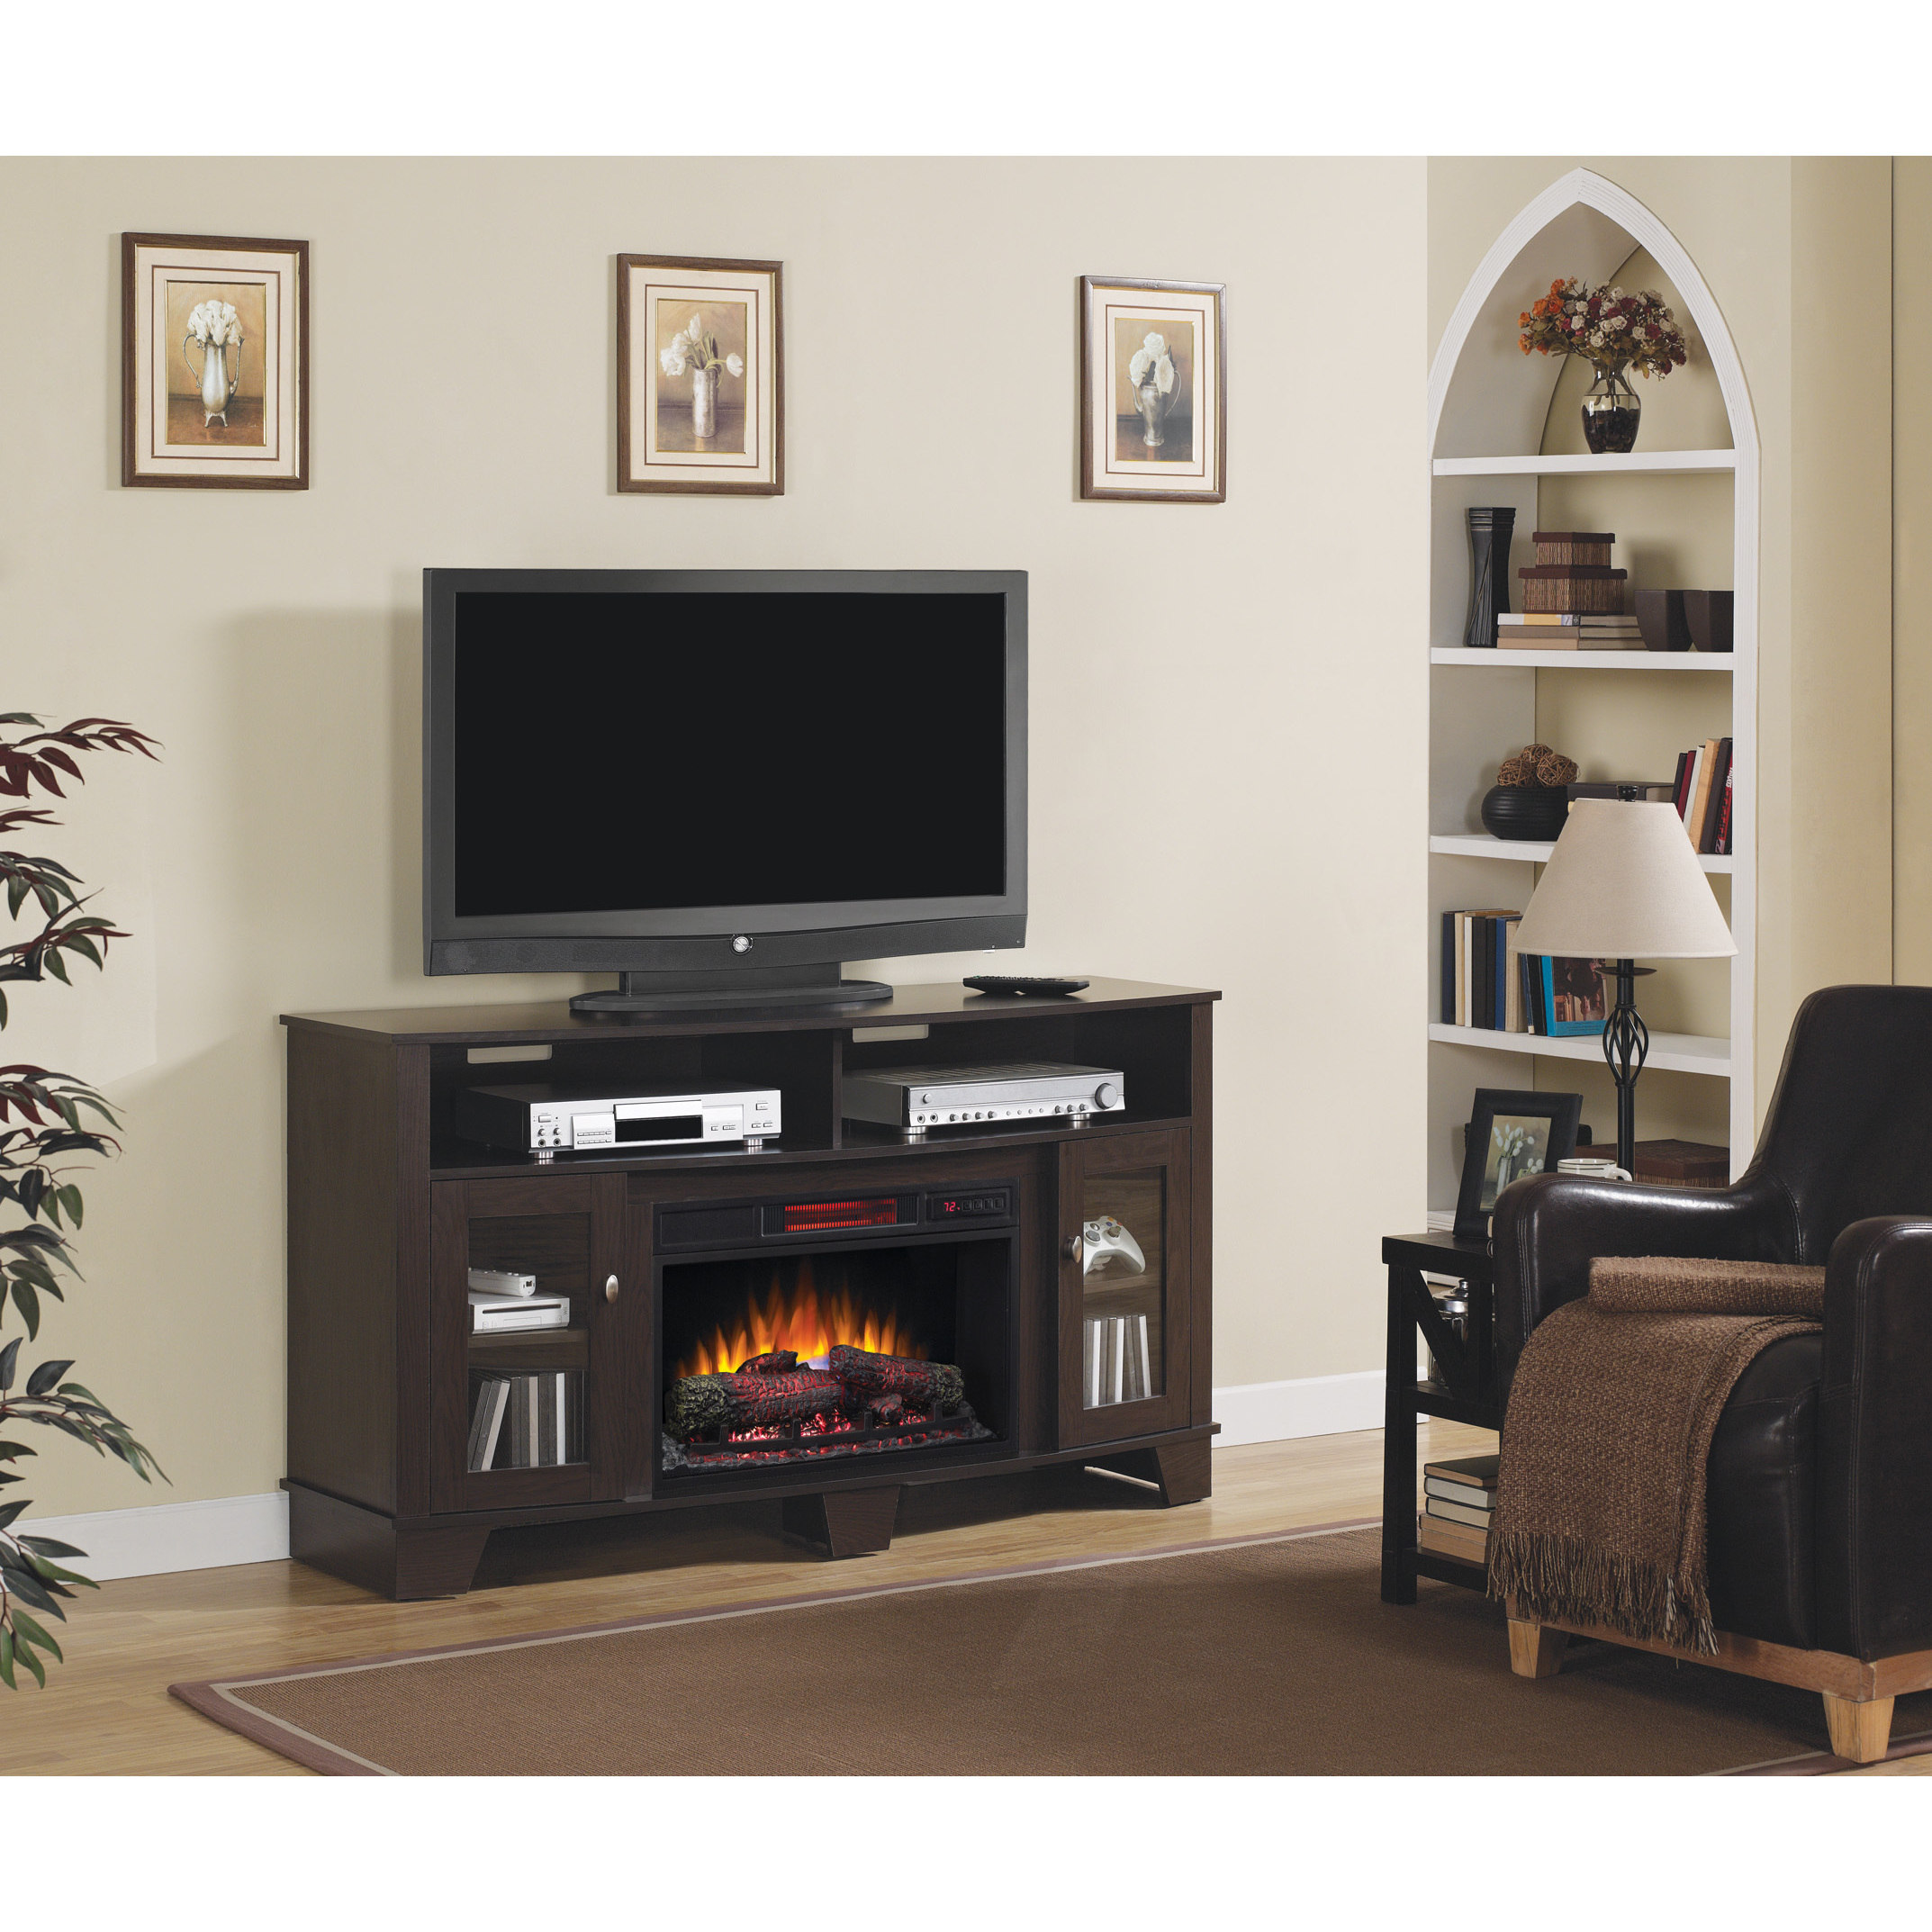 Twin Star Int La Salle Tv Stand With 26 Inch Electric Fireplace